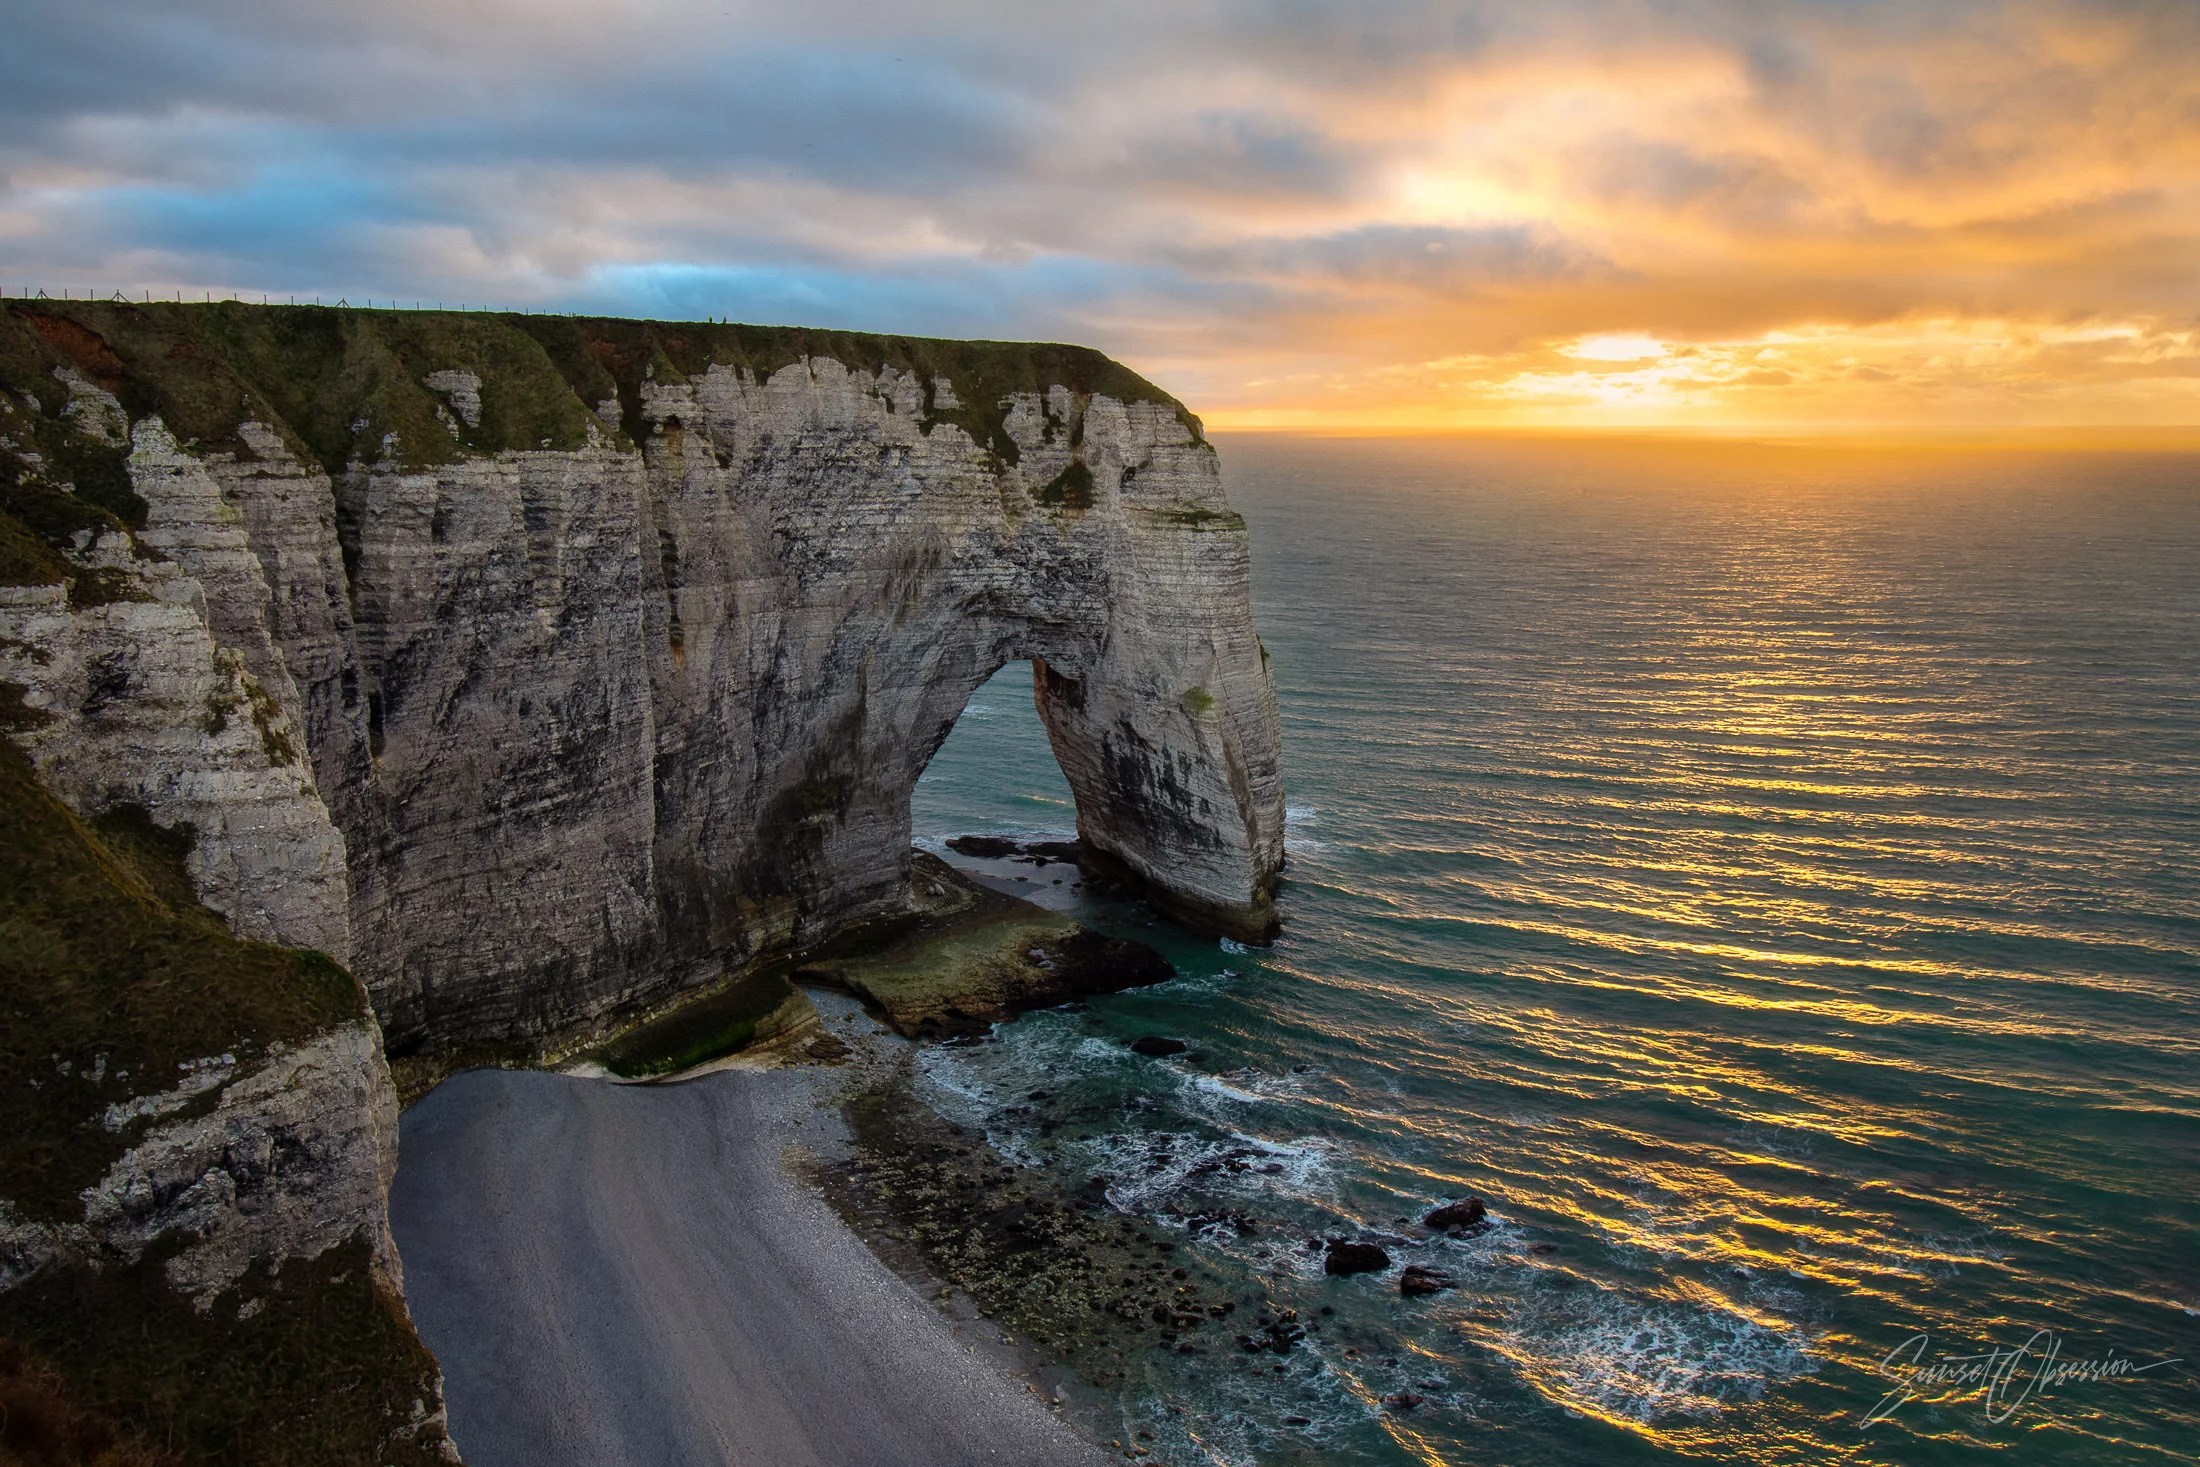 Sunset view of Manneporte arch from the top of Porte d'Aval, Etretat, Normandy, France